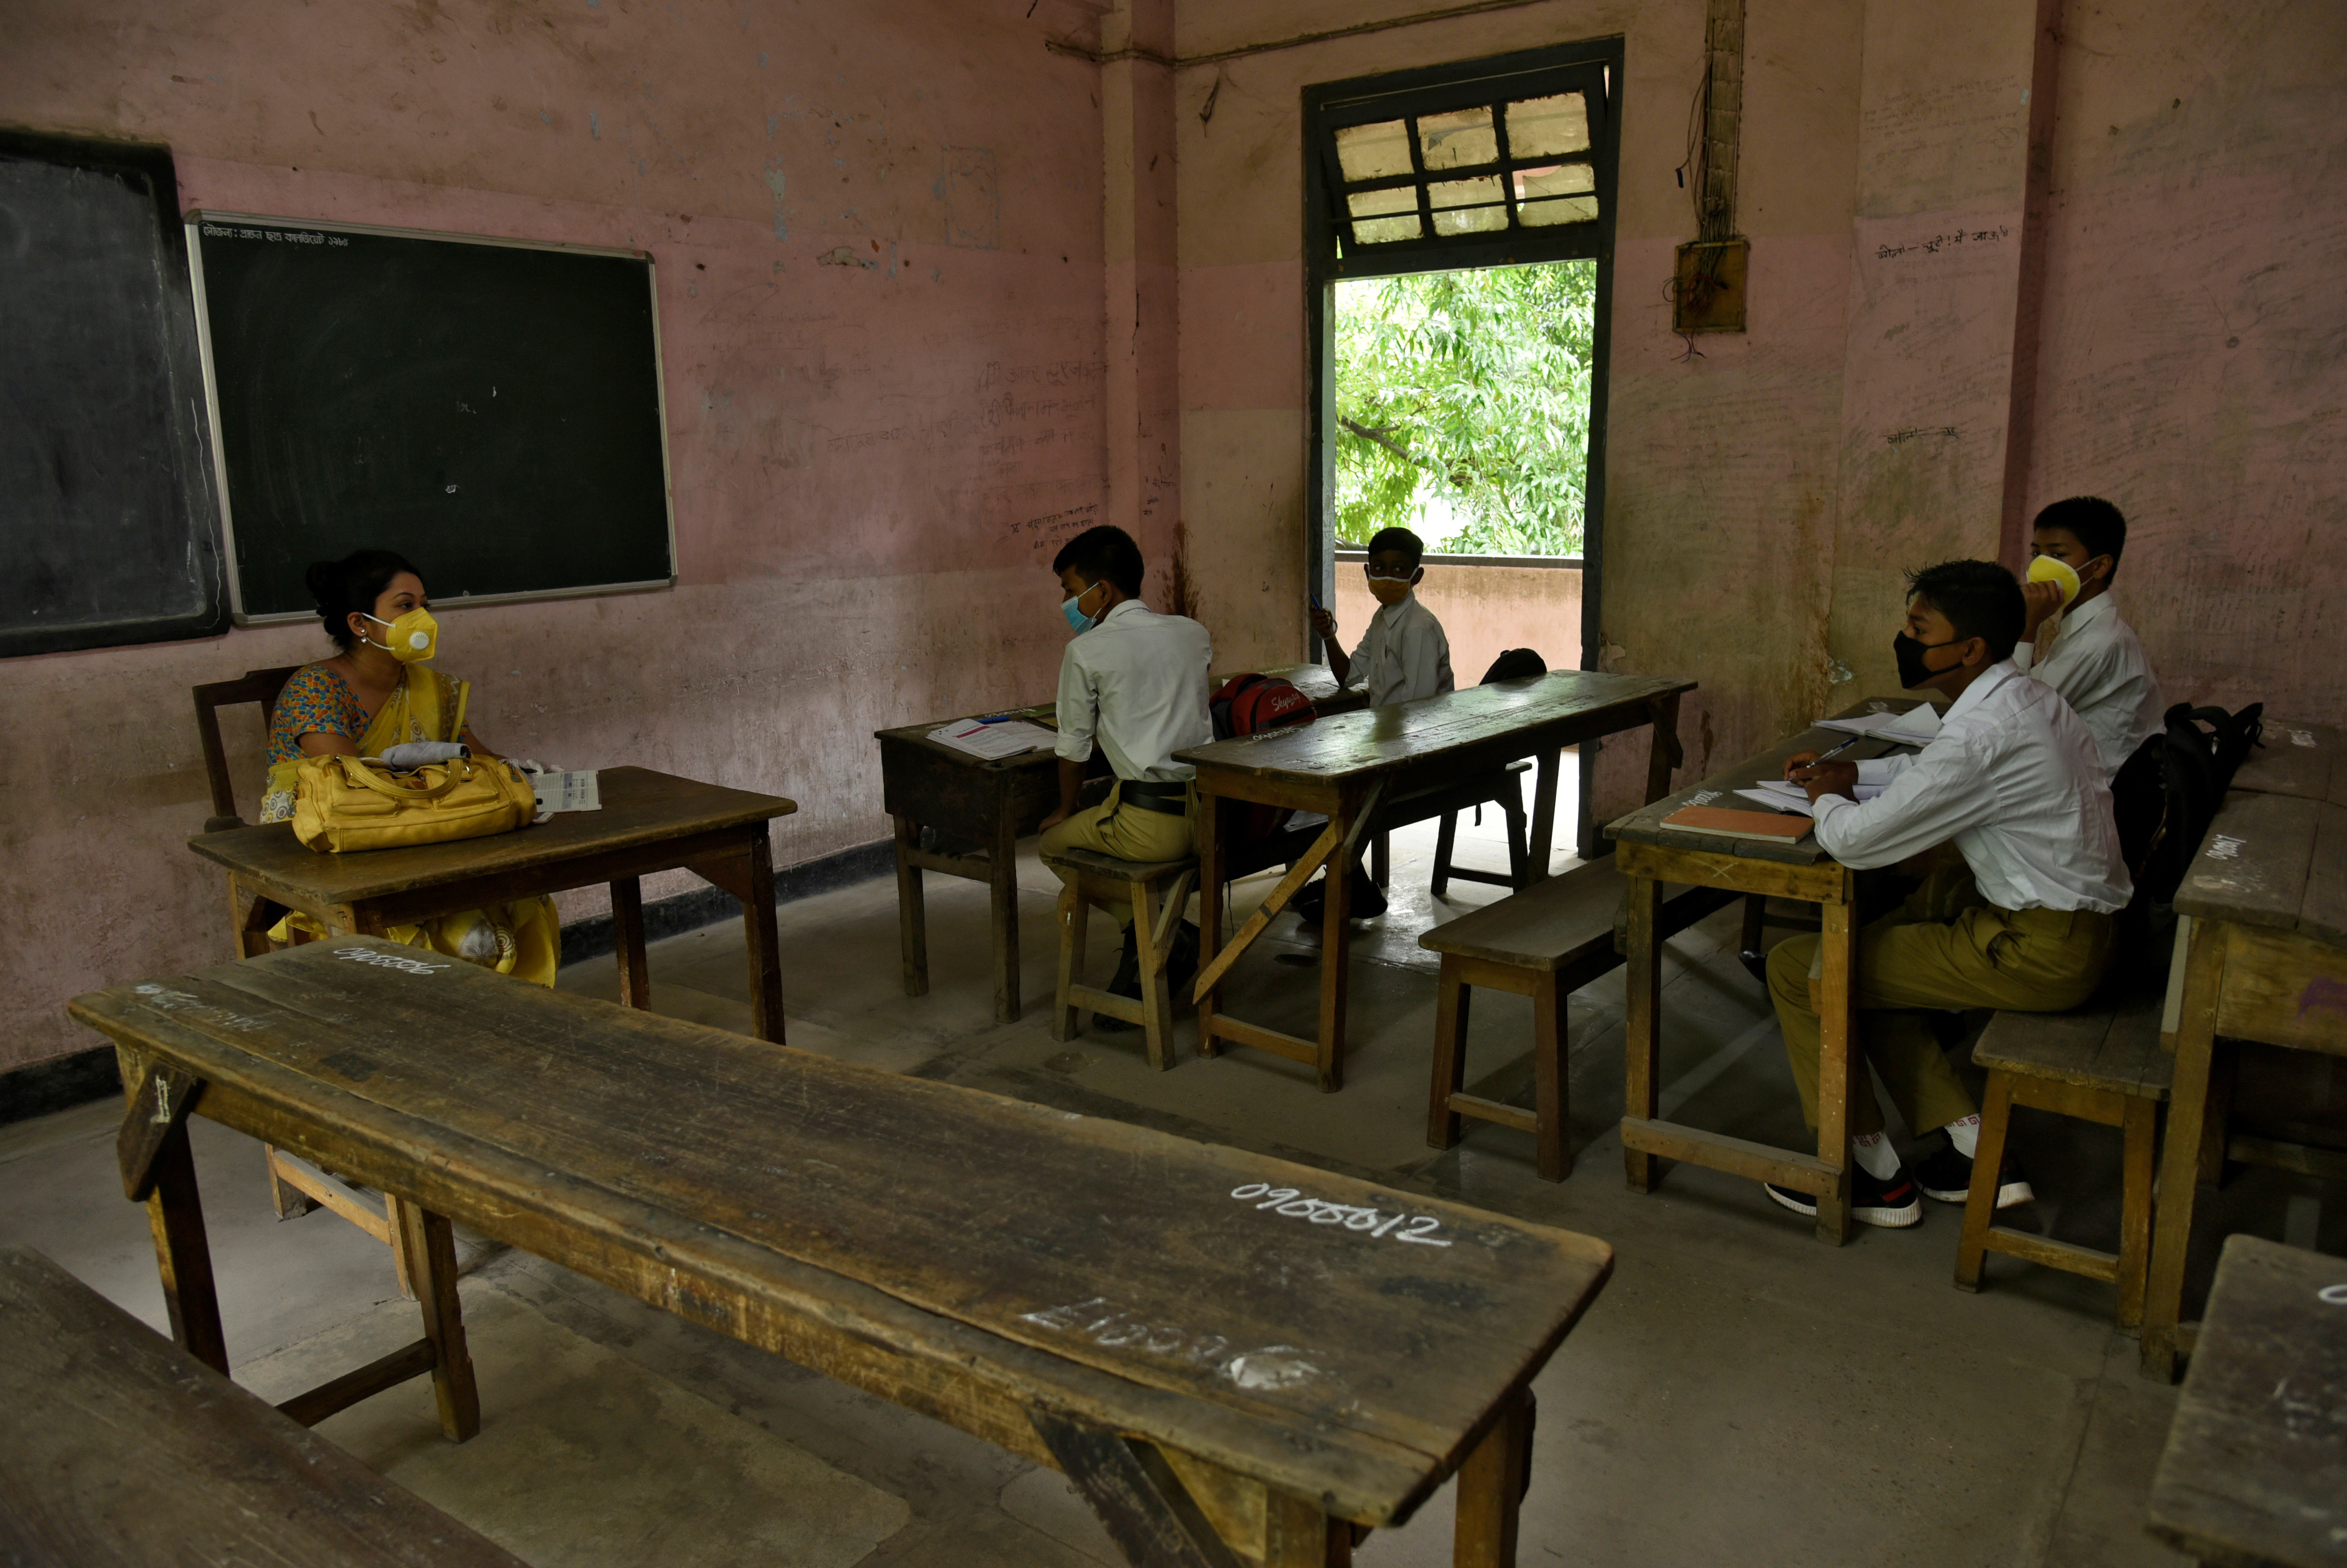 Students and their teacher wear protective face masks inside a classroom to stop the spread of covid-19